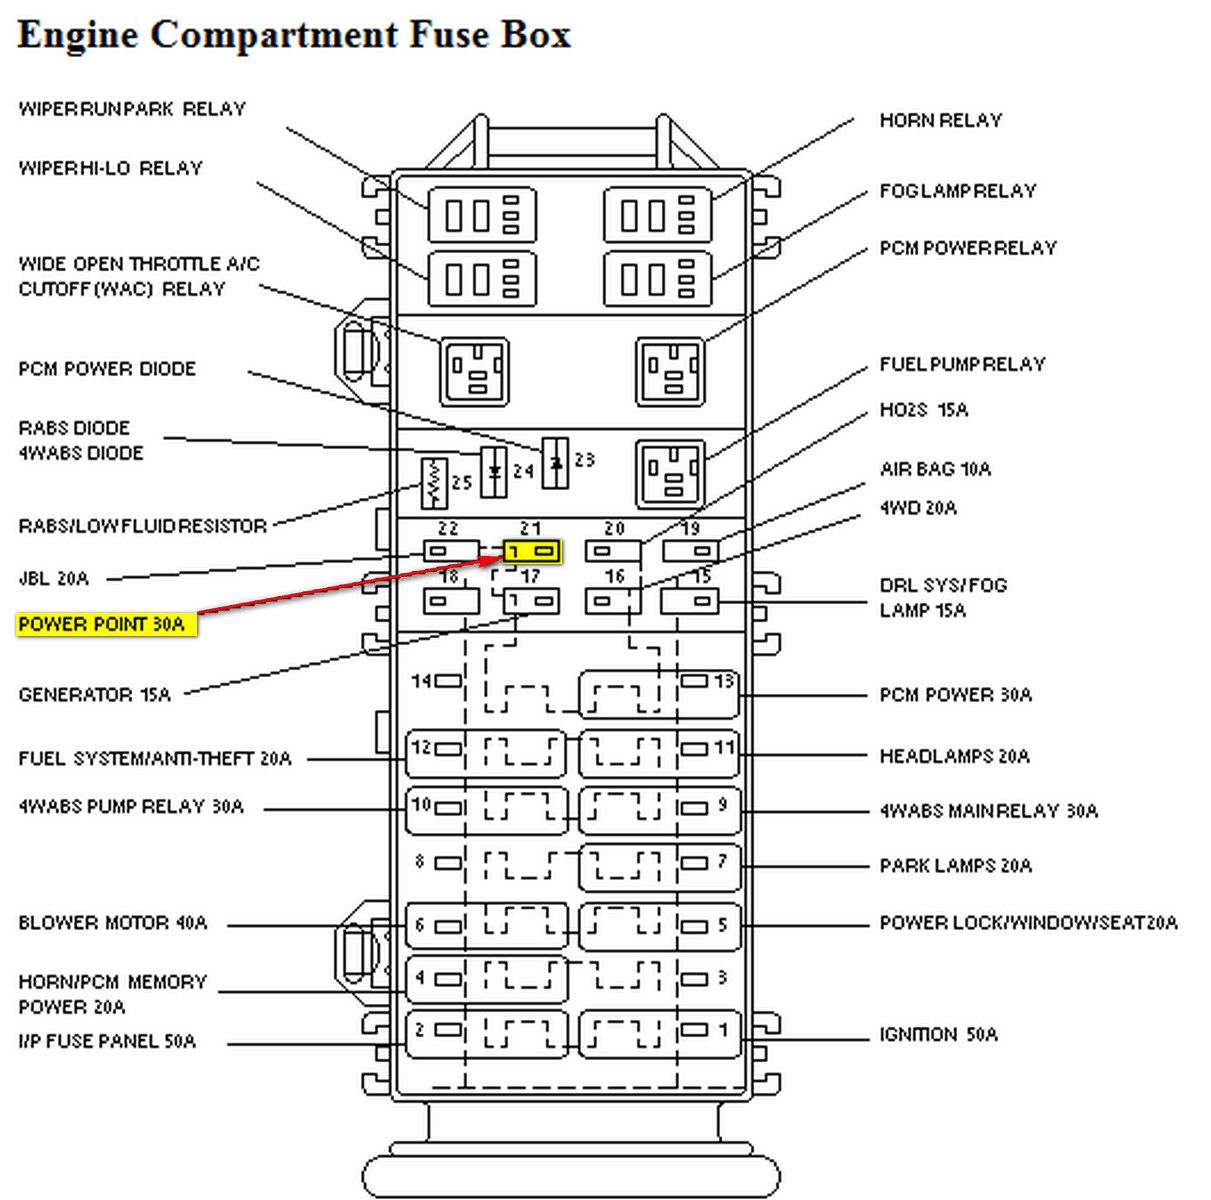 small resolution of 2002 ford ranger fuse diagram 1997 ford ranger fuse box diagram 1998 ford explorer fuse diagram 9 10 from 48 votes 1998 ford explorer